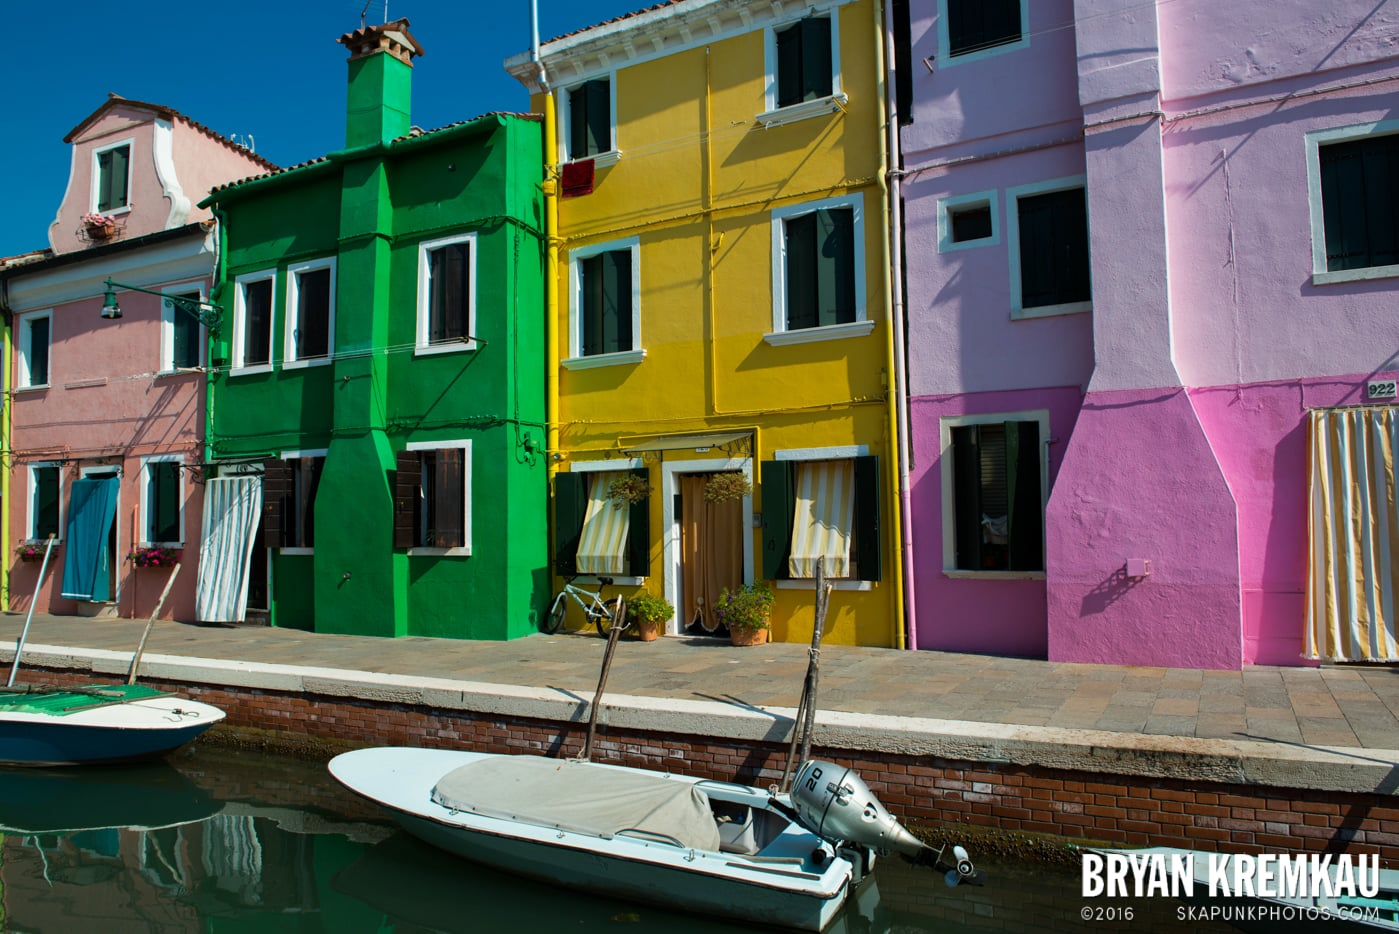 Italy Vacation - Day 6: Murano, Burano, Venice - 9.14.13 (20)